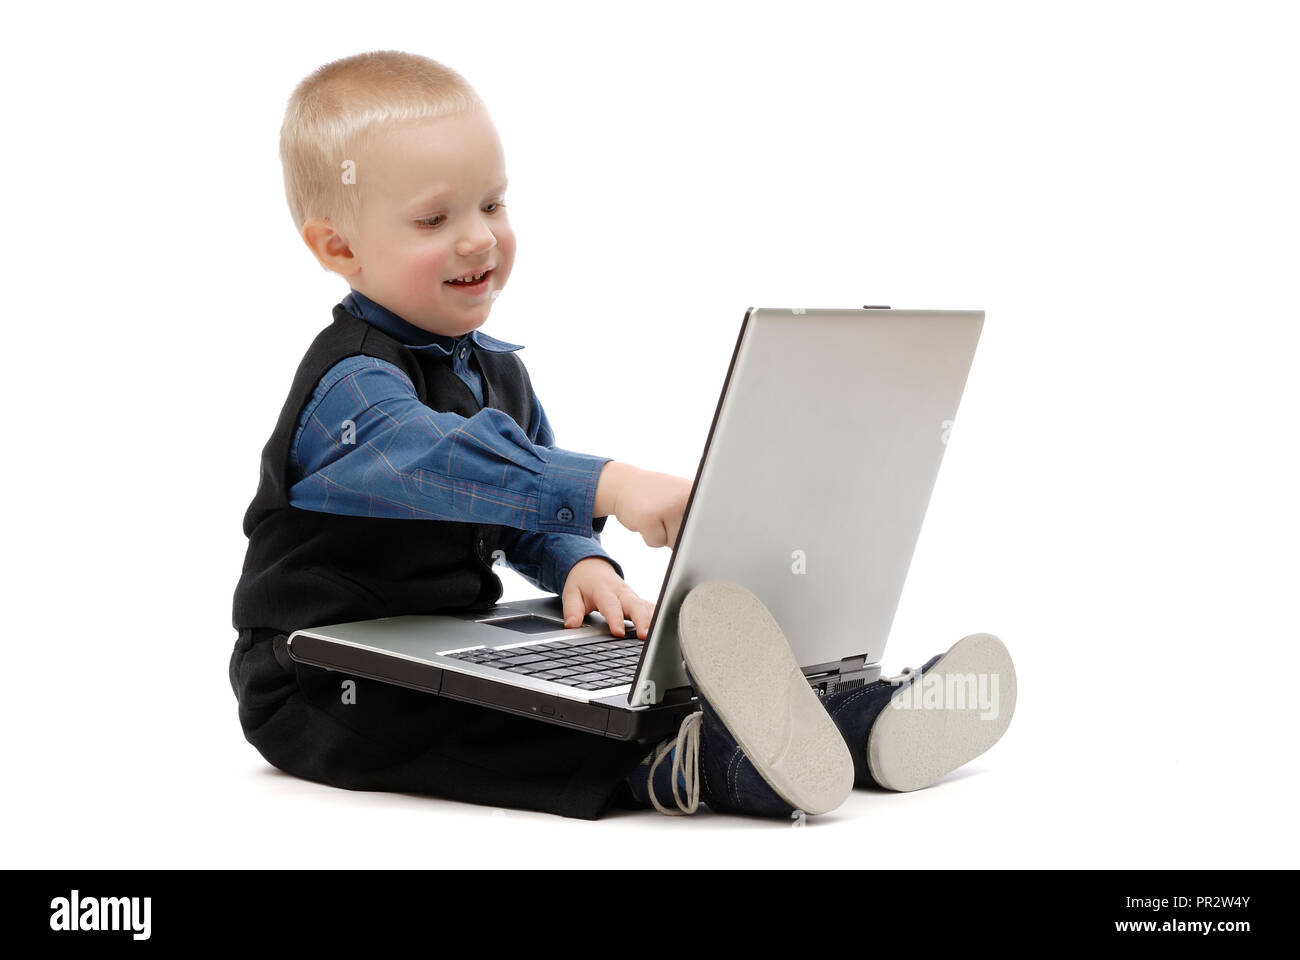 Little boy with a laptop on white background, isolated - Stock Image